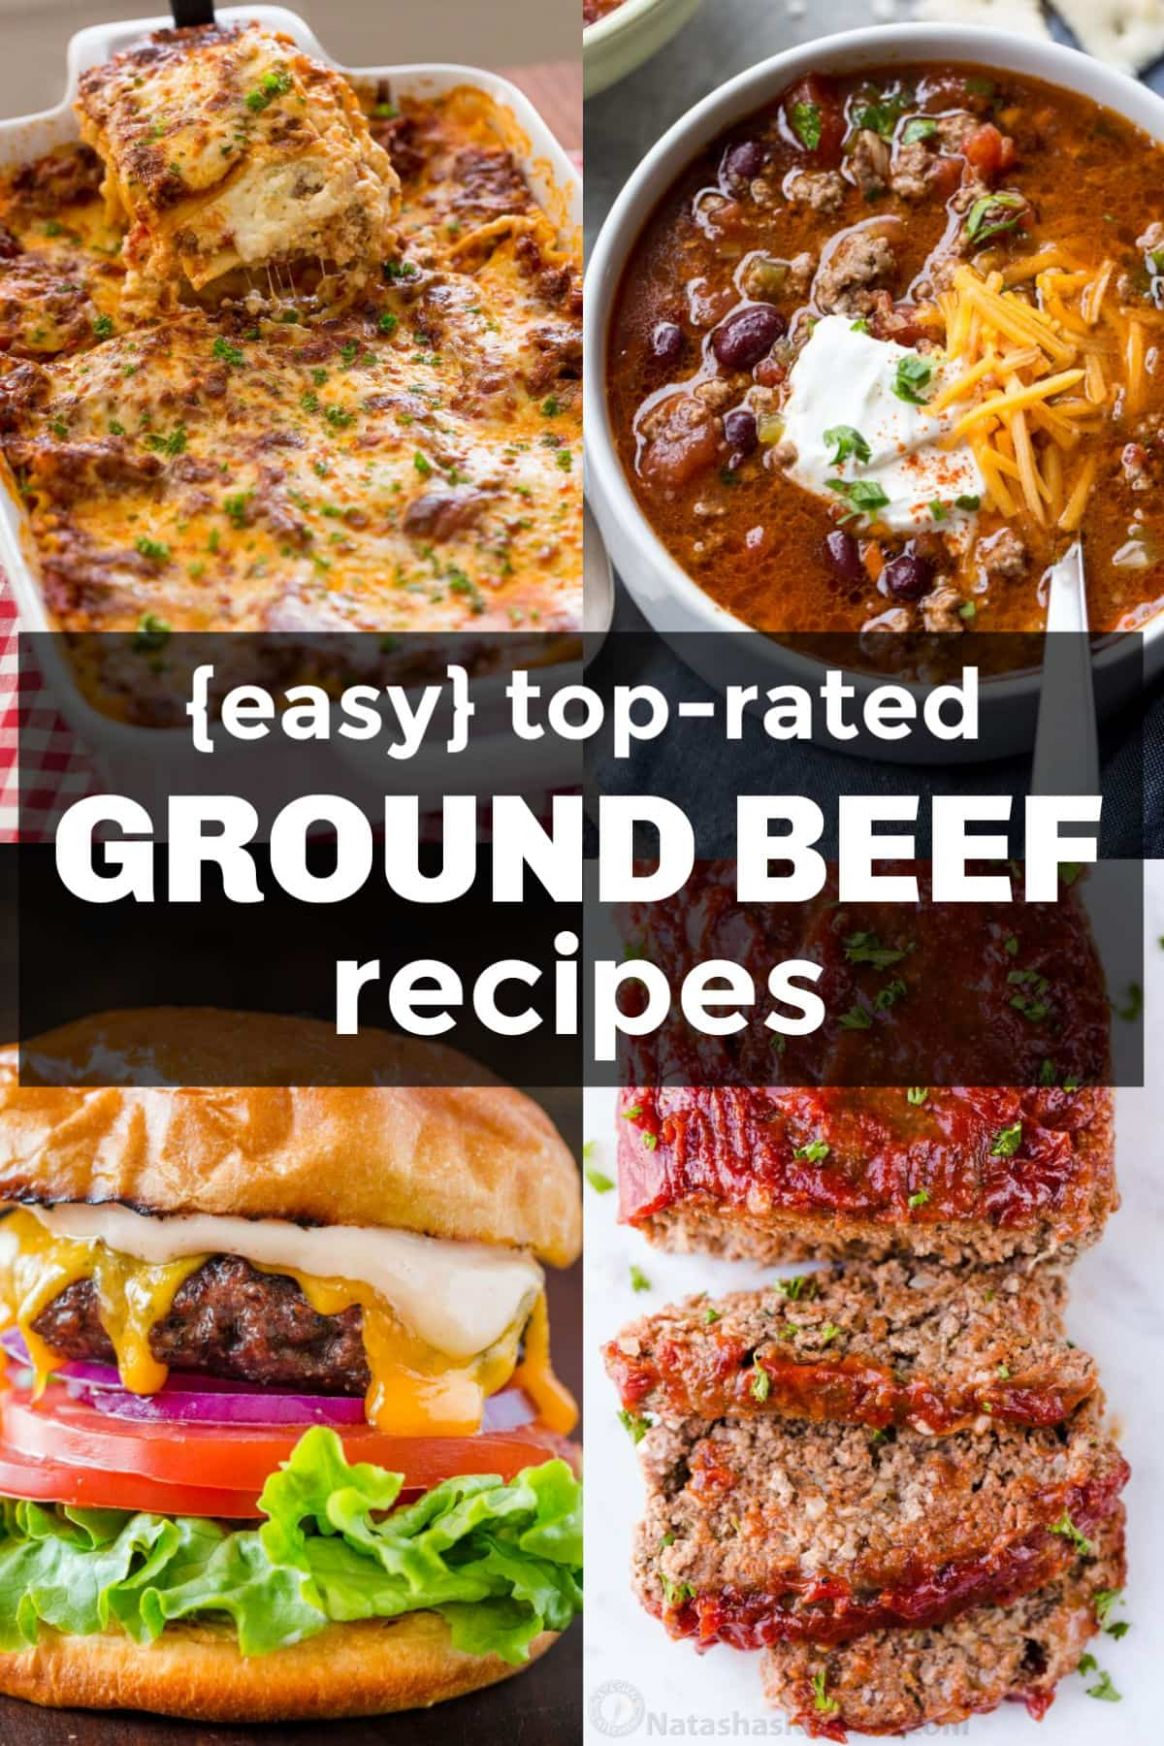 How to Cook Ground Beef for Ground Beef Recipes - Beef Recipes Quick And Easy